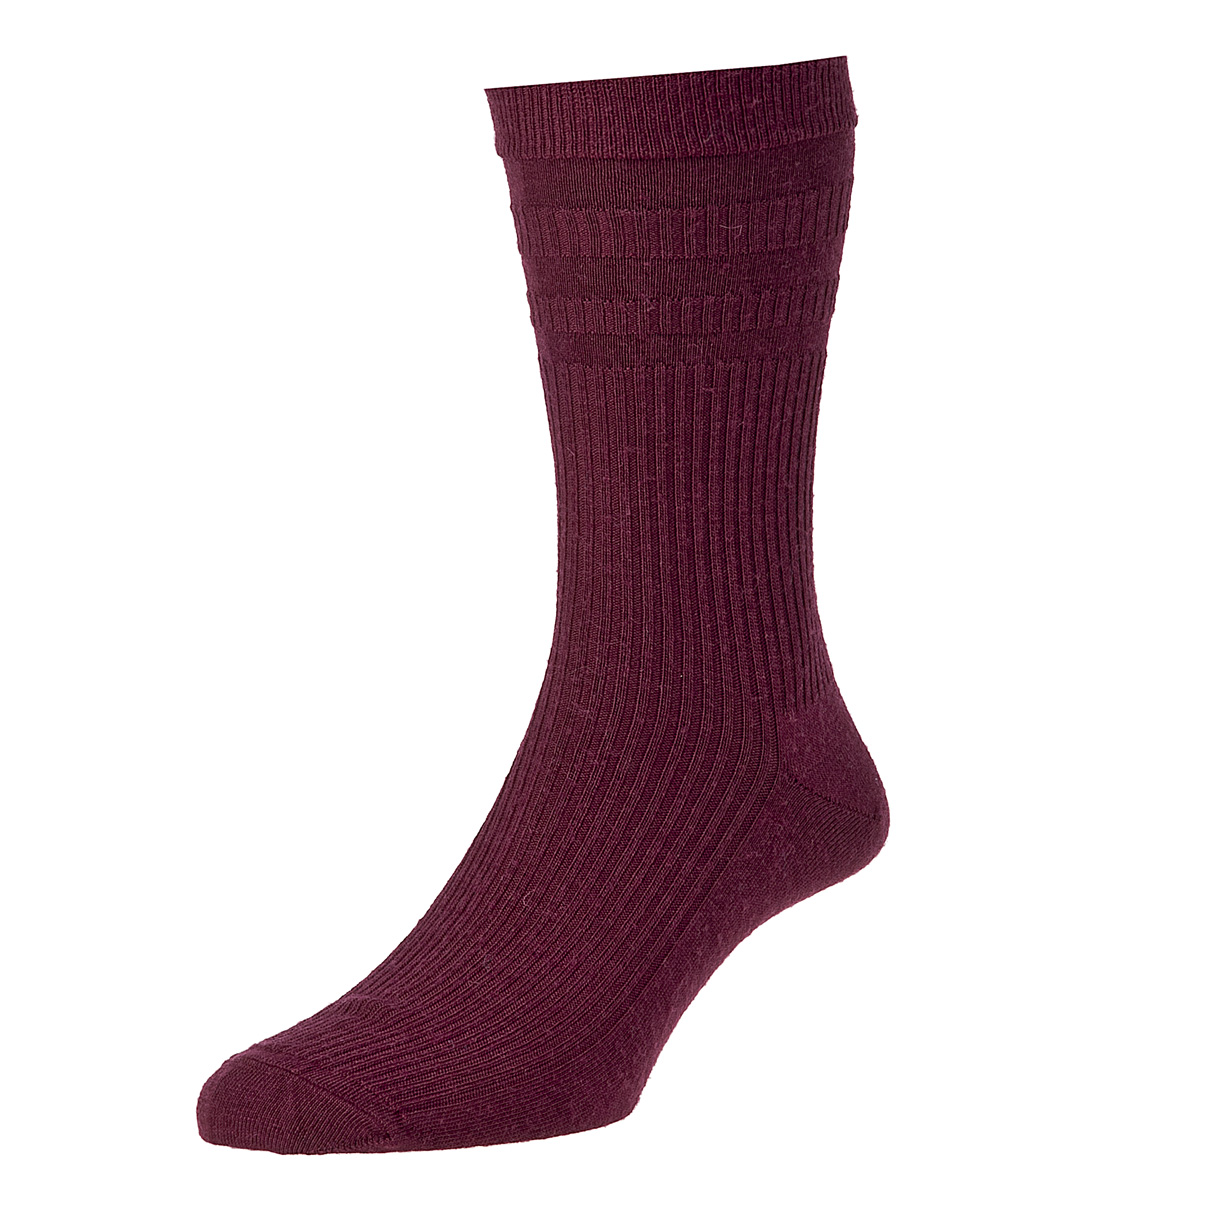 HJ Hall Softop Mens Wool Socks size 6-11 Burgundy  HJ90